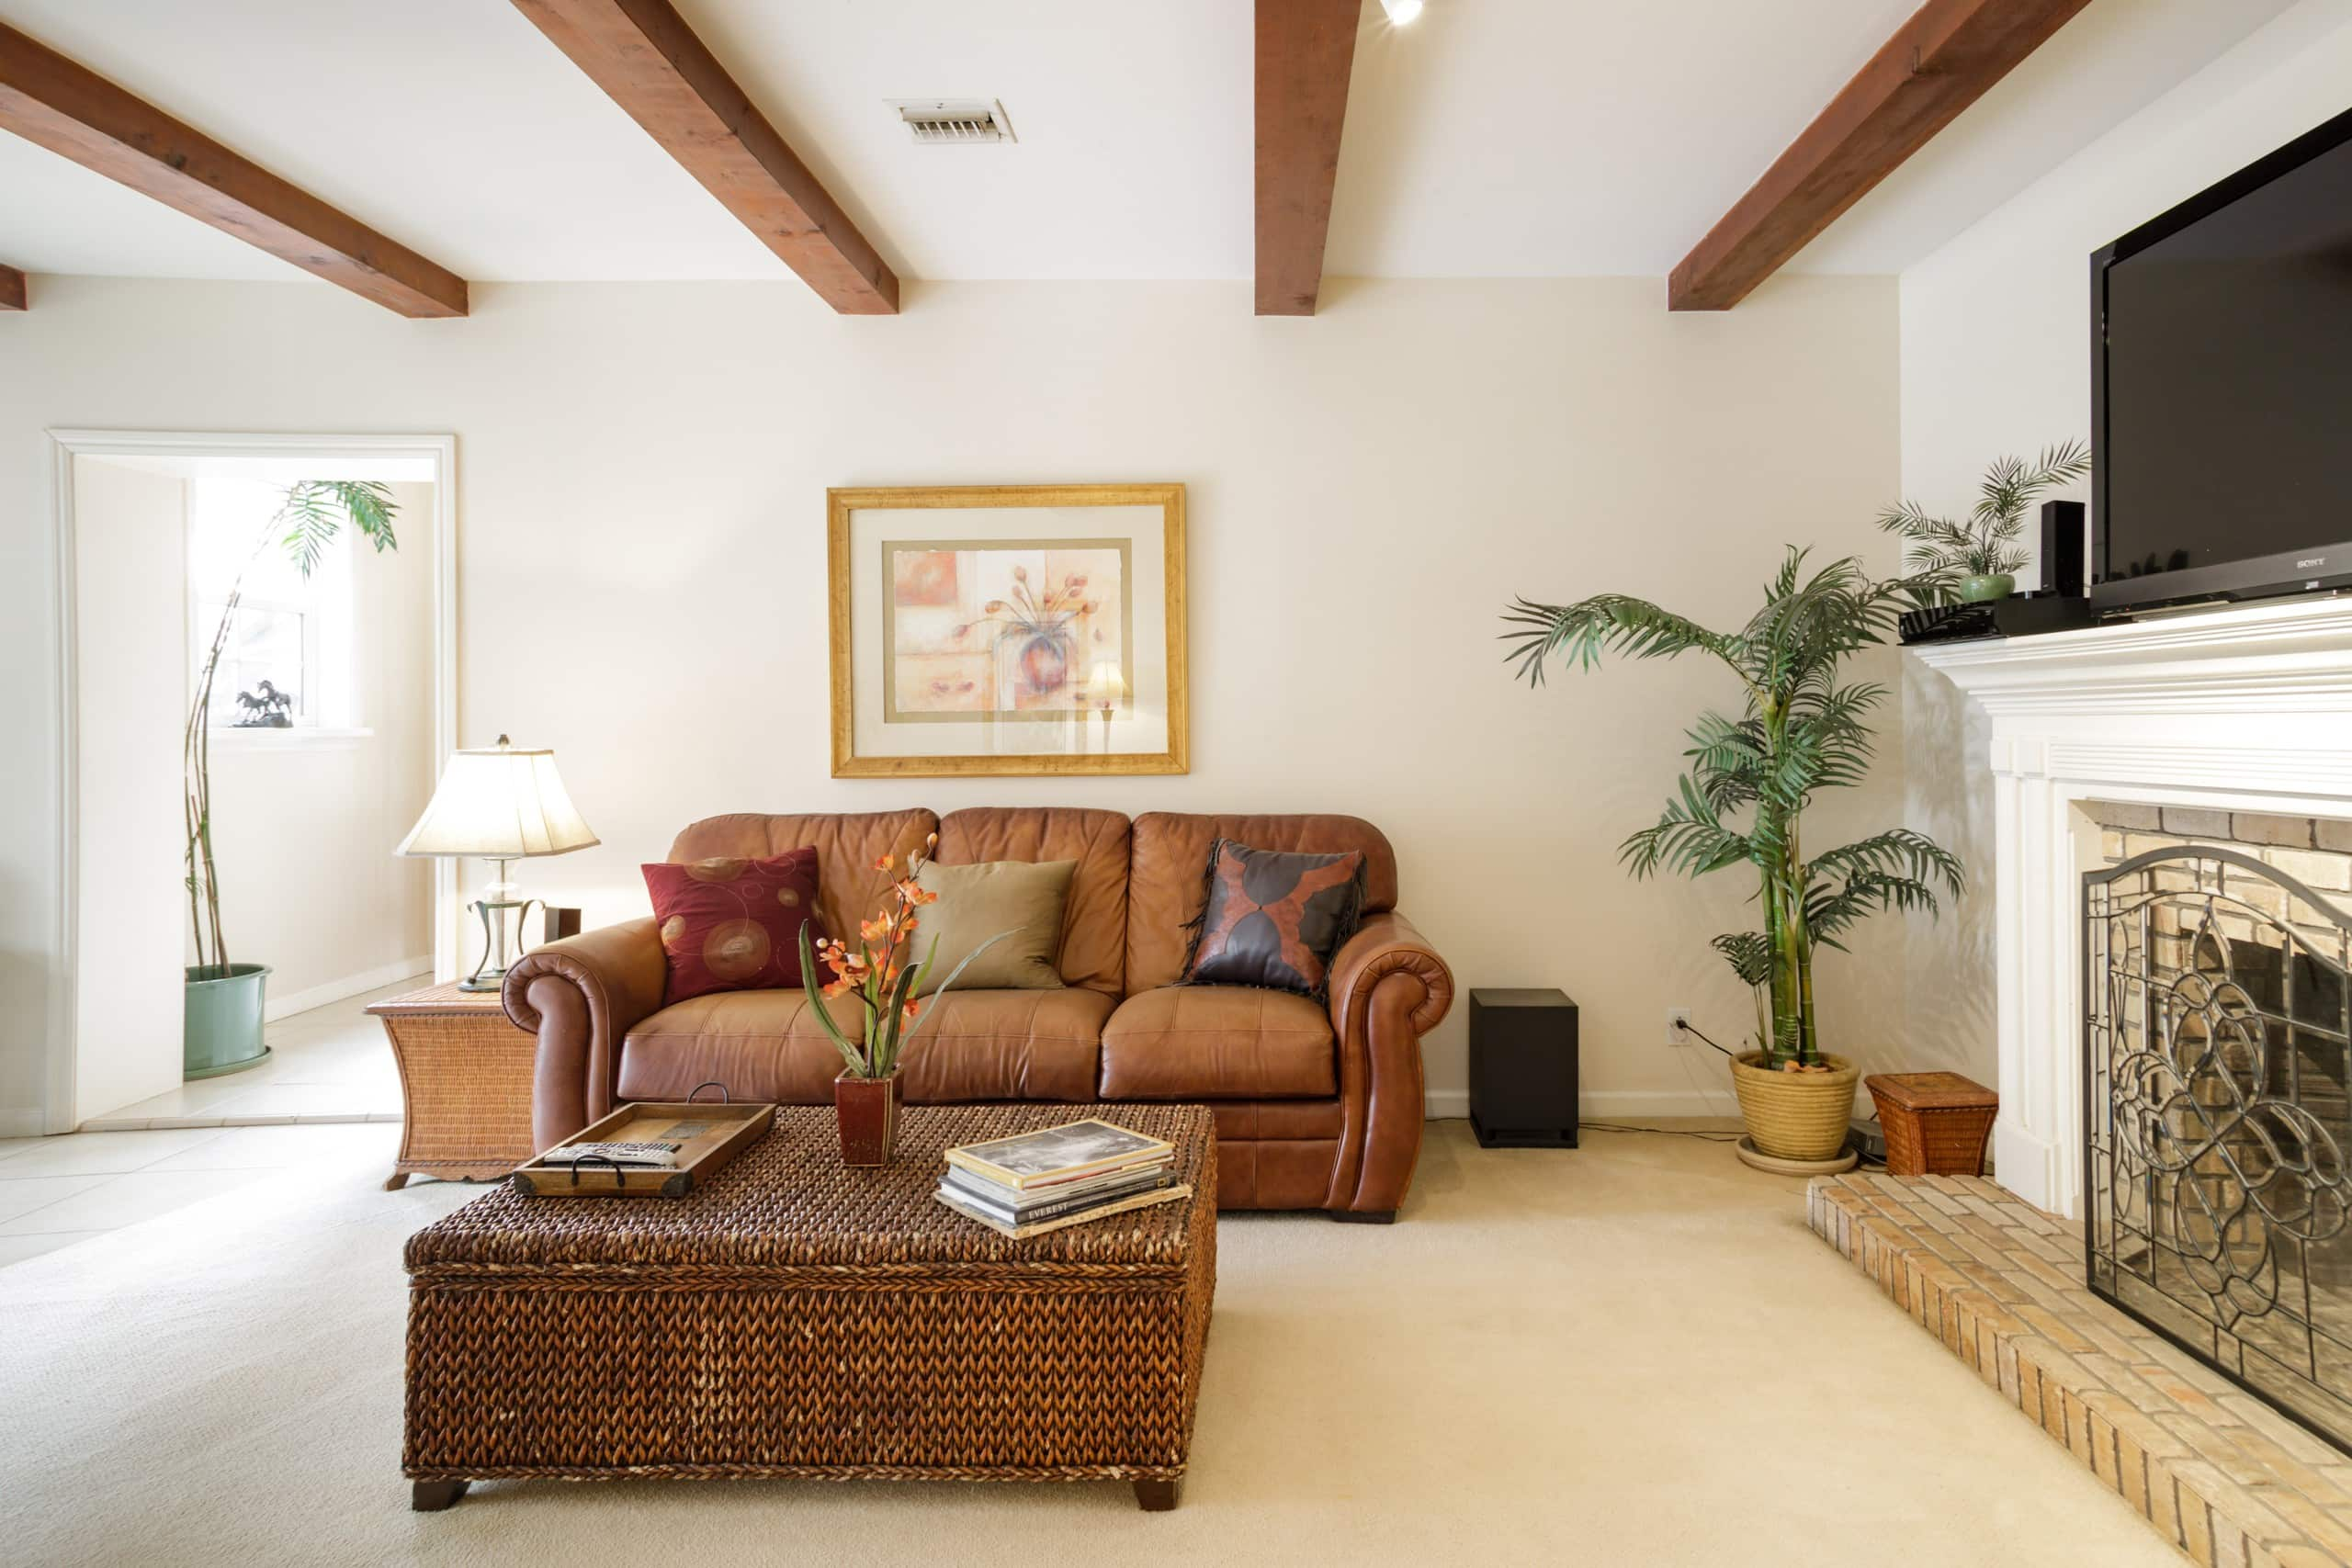 comfy room in a whittier hills home casas en alquiler en